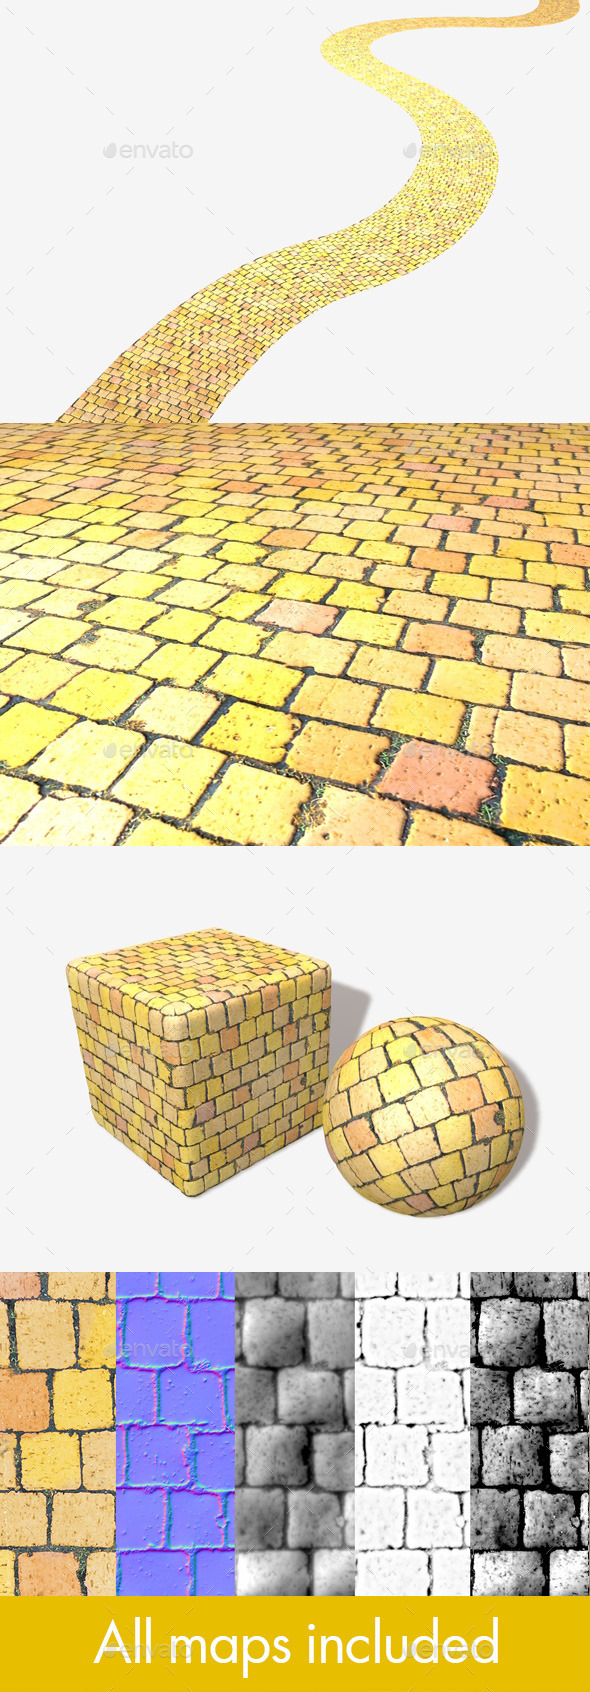 Yellow Brick Road Seamless Texture - 3DOcean Item for Sale